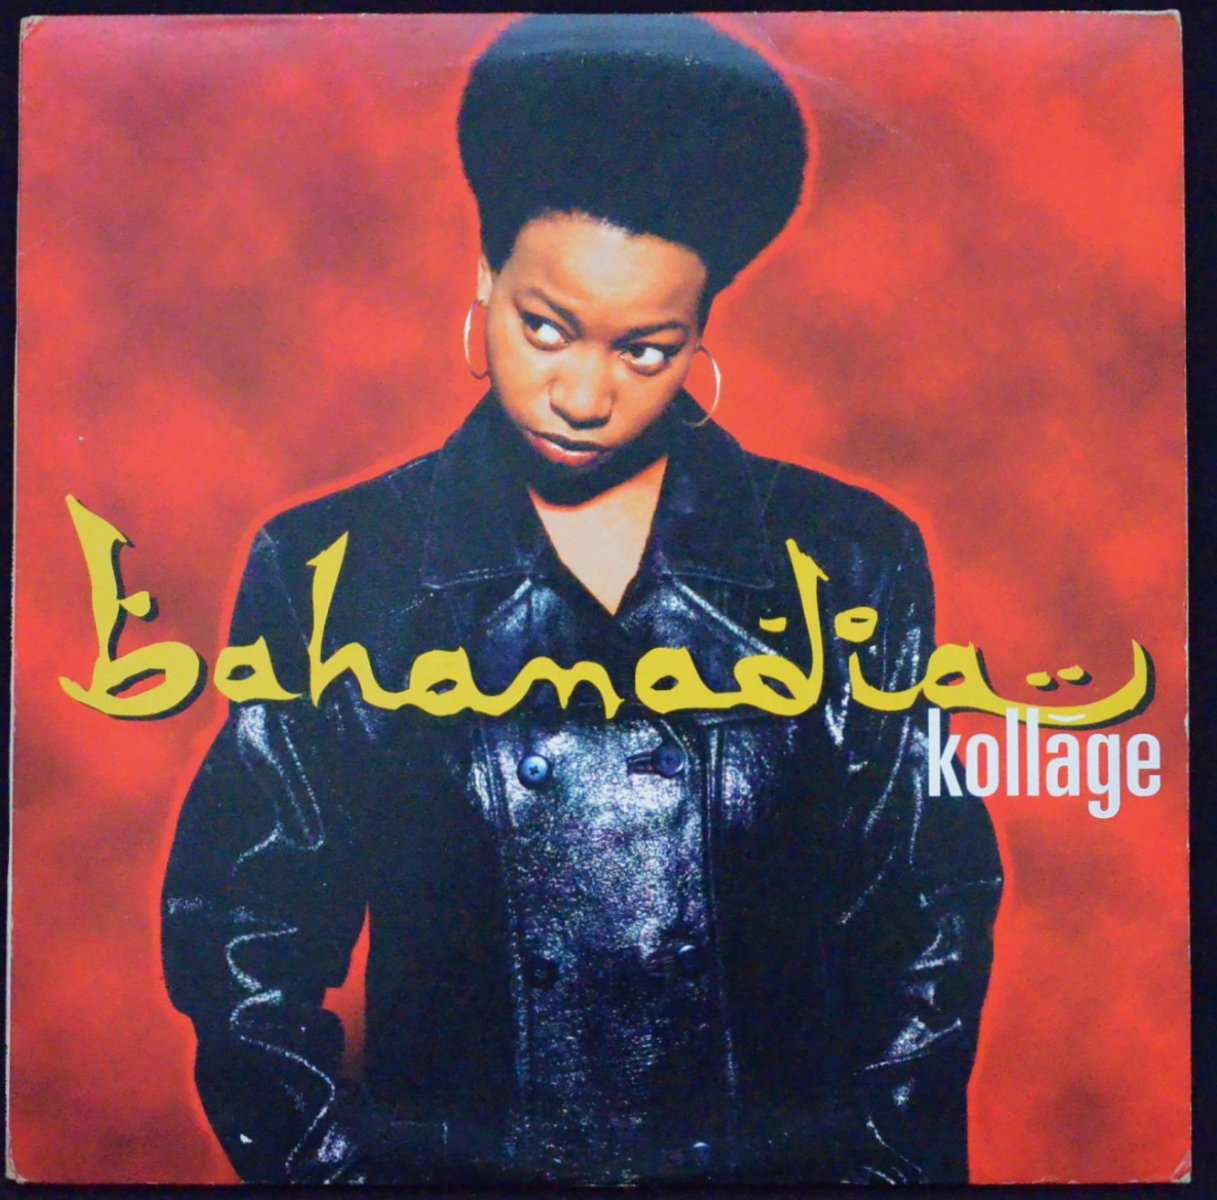 BAHAMADIA / KOLLAGE (1LP)